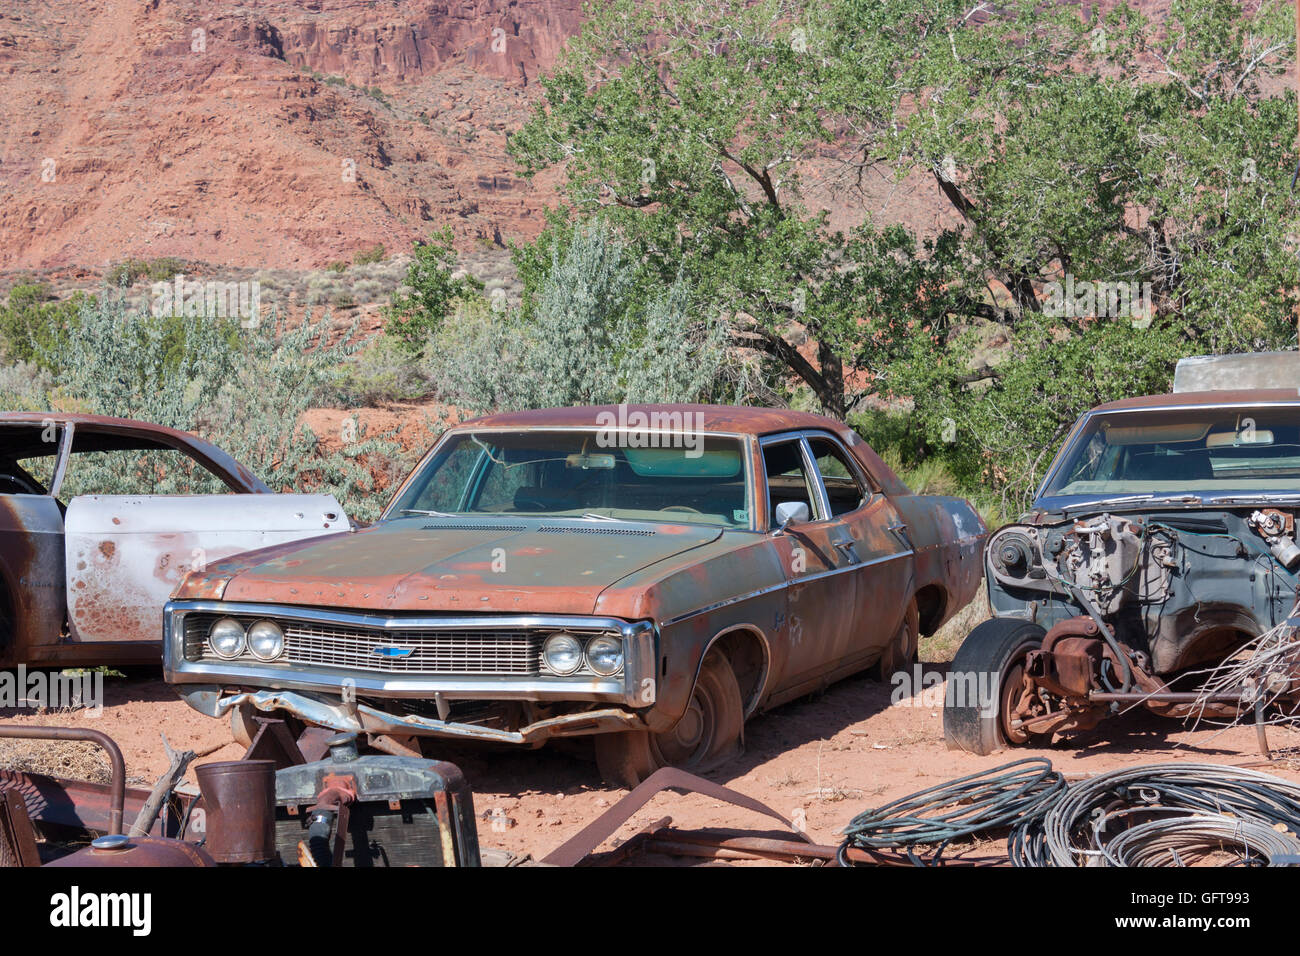 abandoned rusty classic 1960s Chevrolet in junkyard - Stock Image